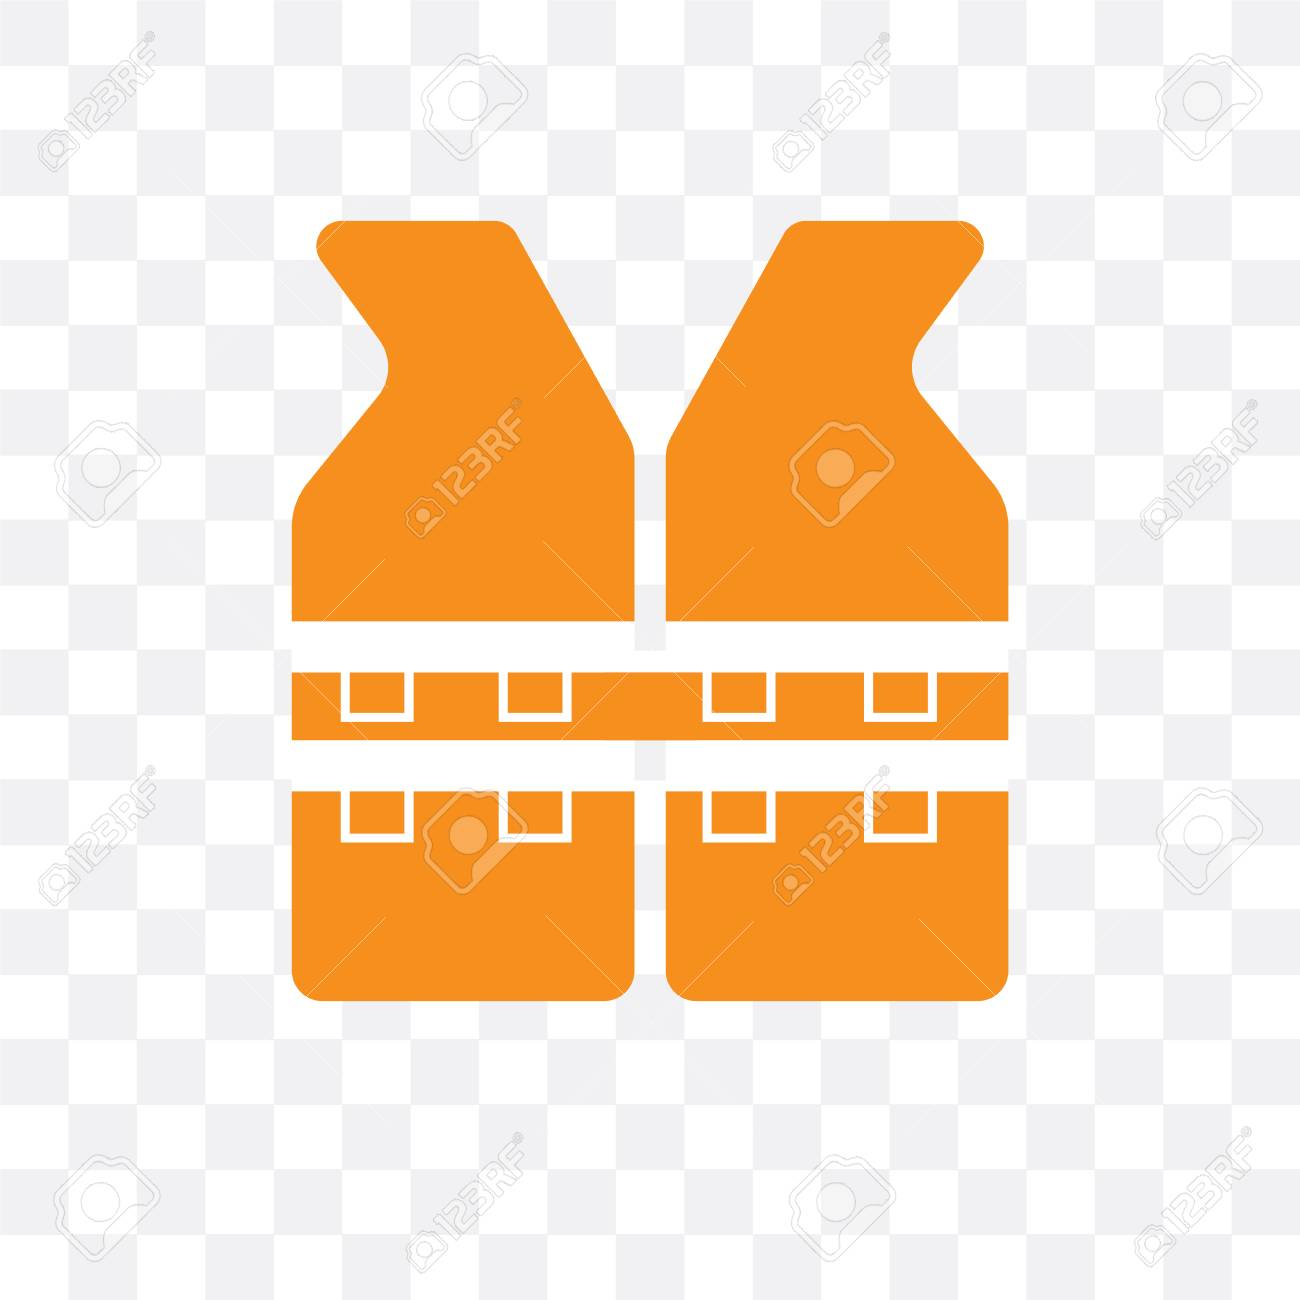 Life Jacket Vector Icon Isolated On Transparent Background Life Royalty Free Cliparts Vectors And Stock Illustration Image 107275784